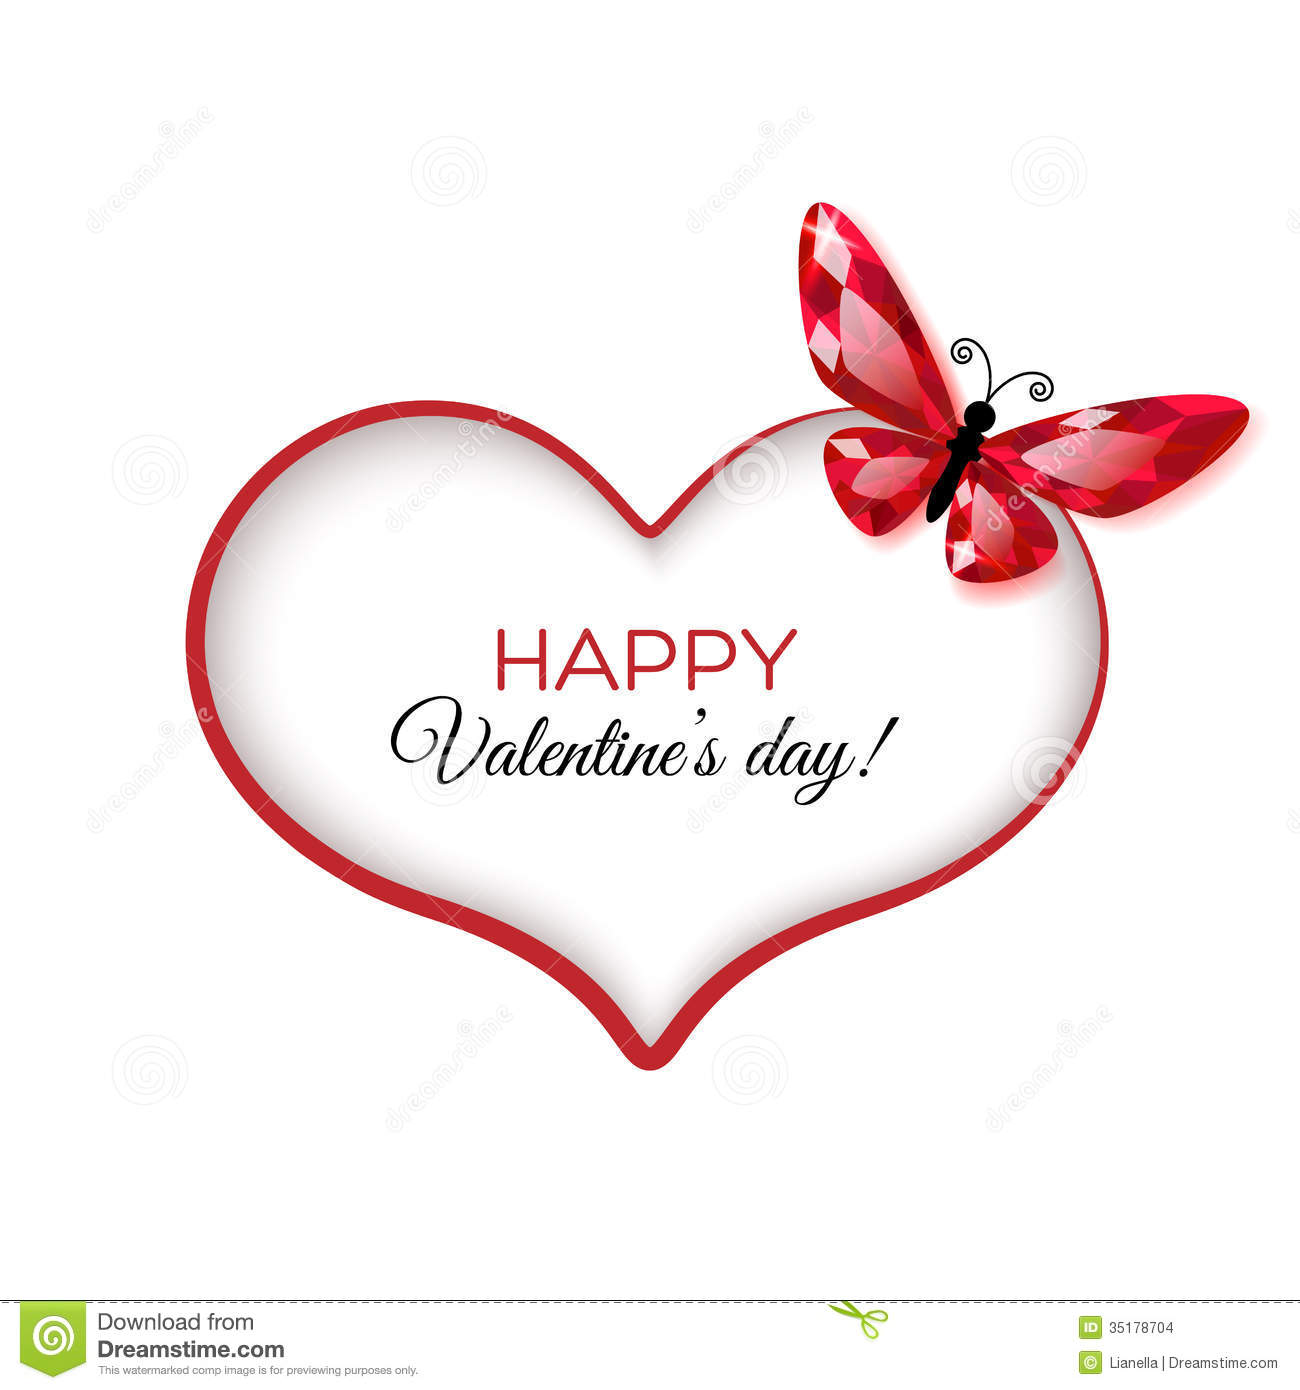 Happy valentines day greeting card stock vector illustration of happy valentine s day greeting card m4hsunfo